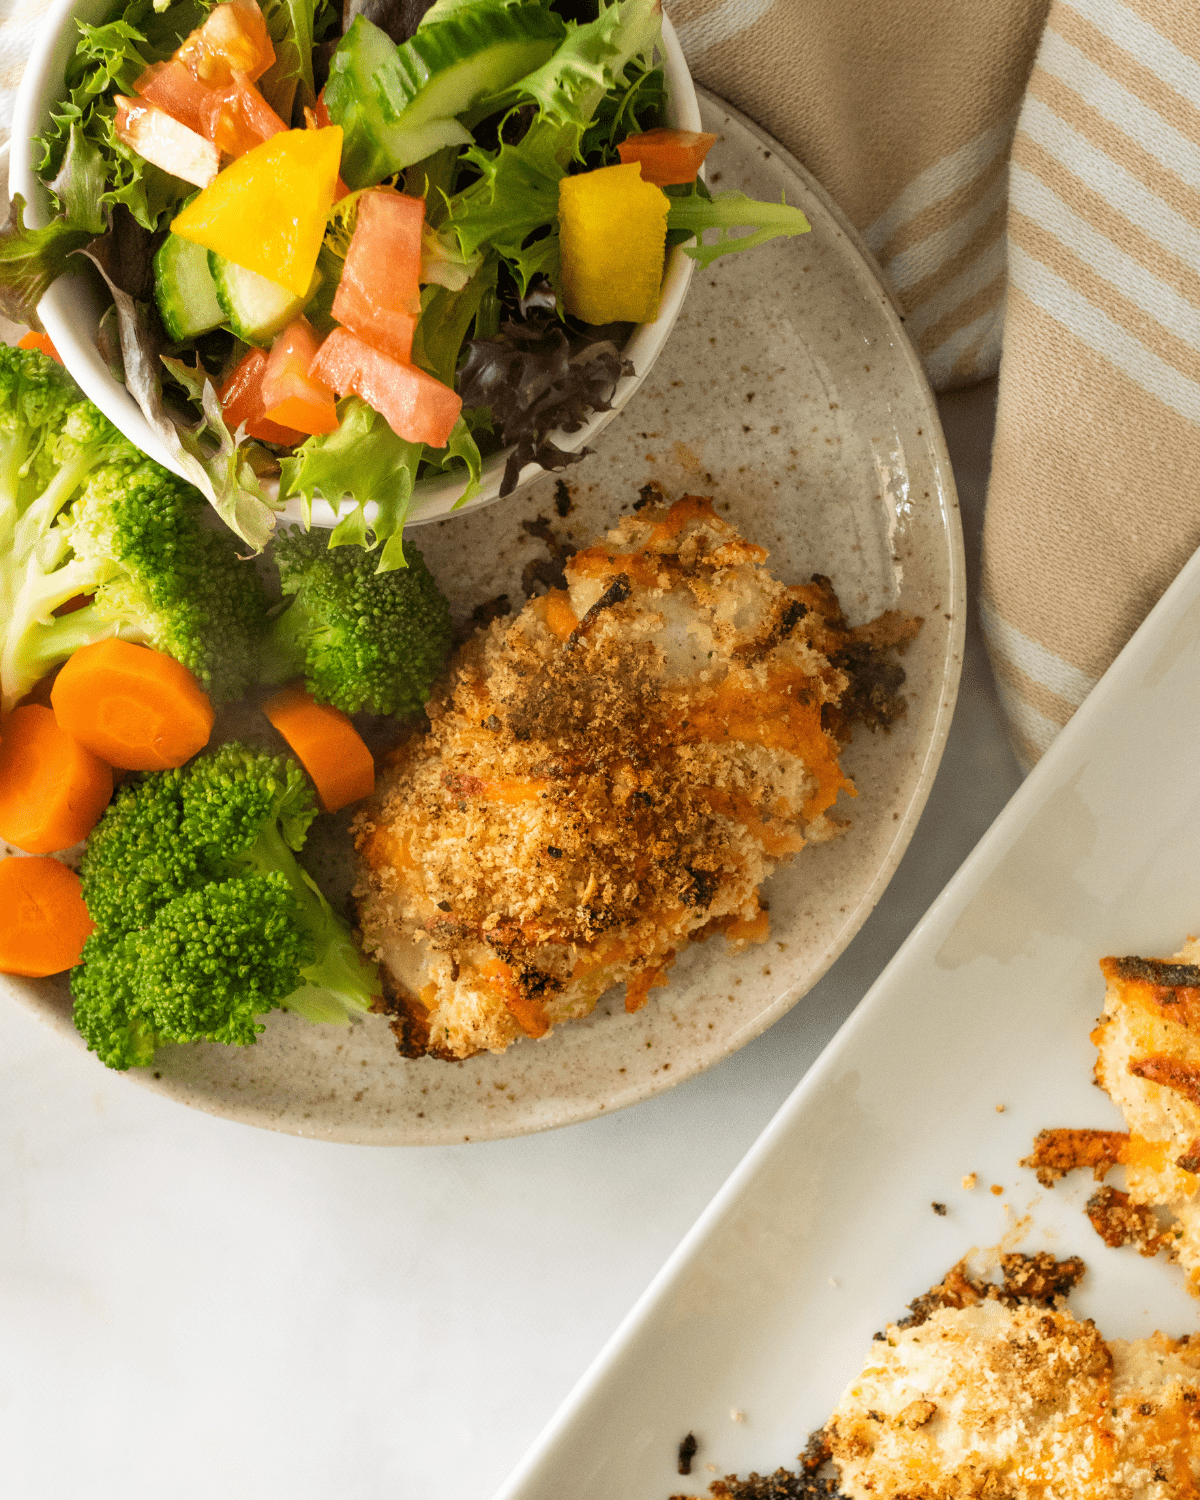 baked ranch chicken in a plate with broccoli and carrots.